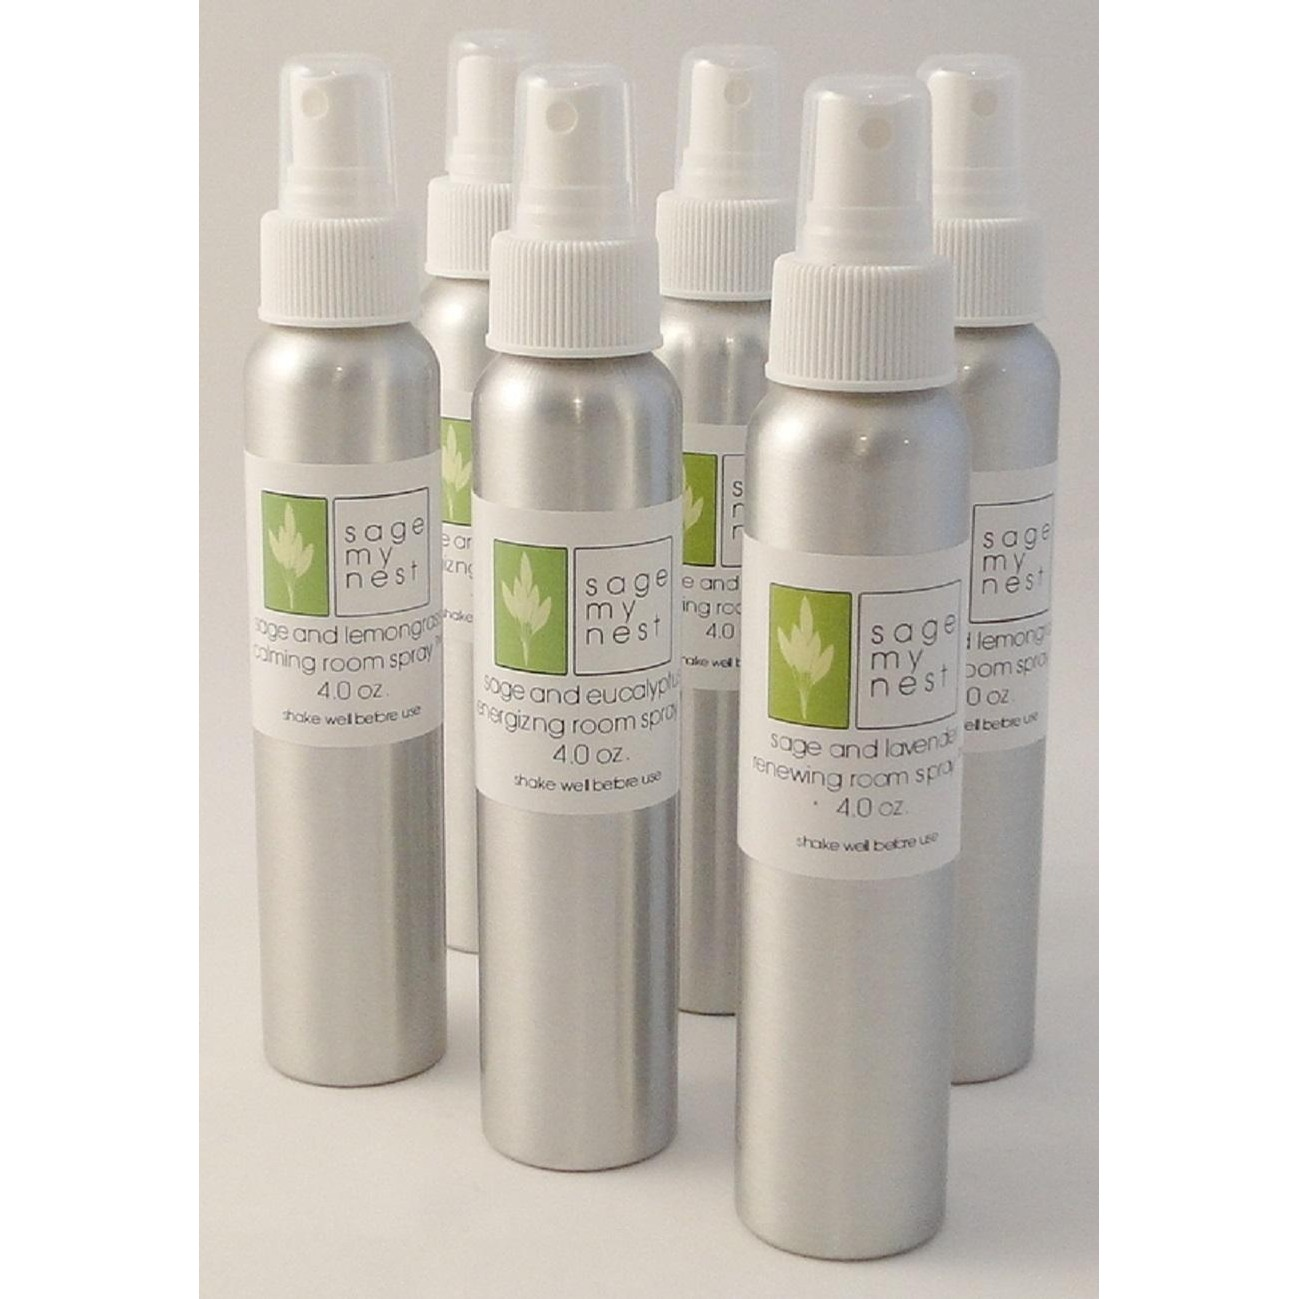 Sage My Nest 4.0 oz. Smudge Spray (Select From A Variety Of Scents)